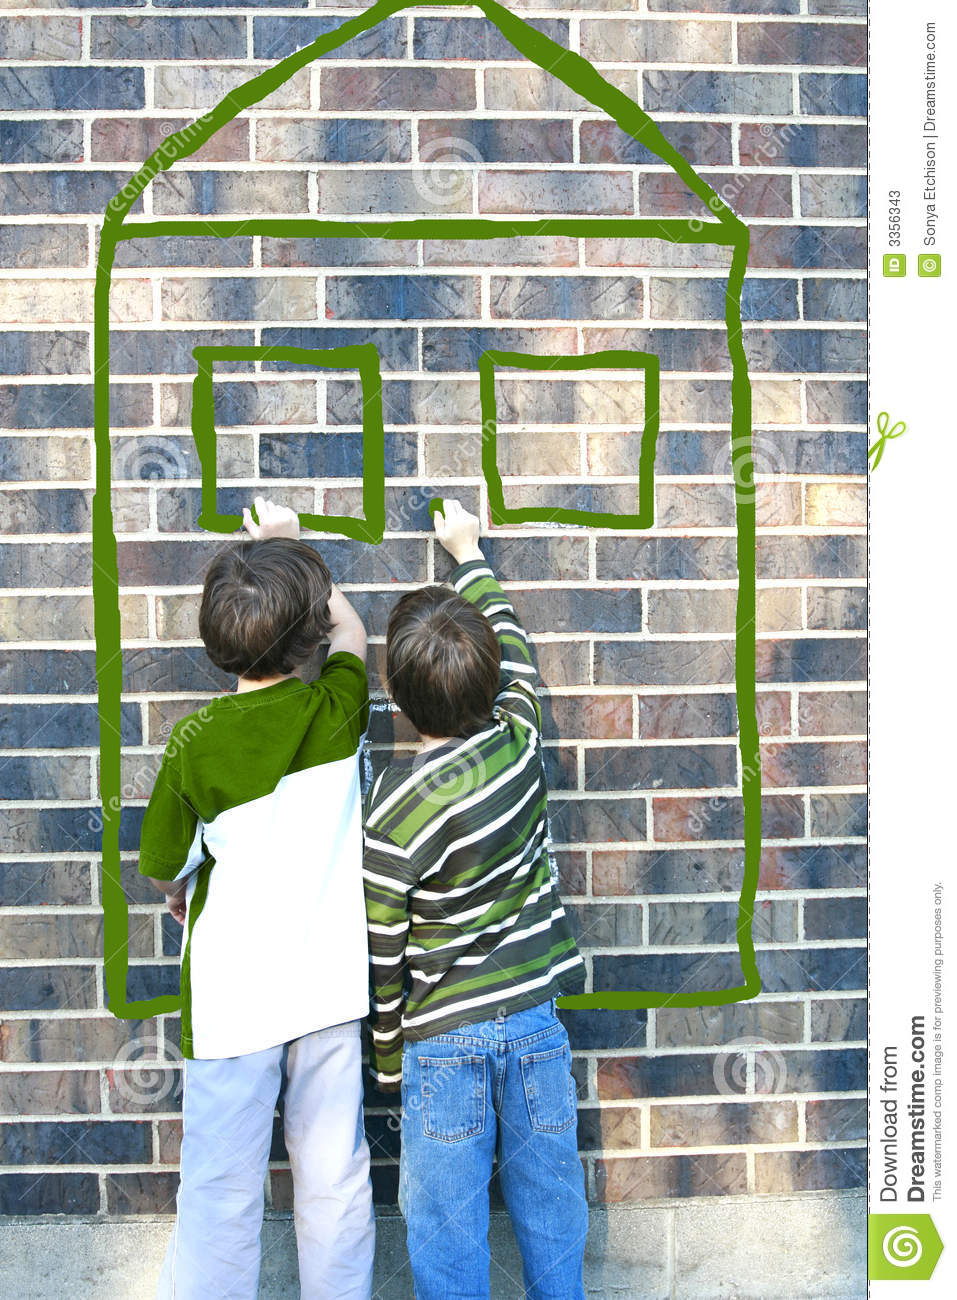 Stock Image Dreamstime Children Writing On Brick Wall Stock Photos Image 3356343